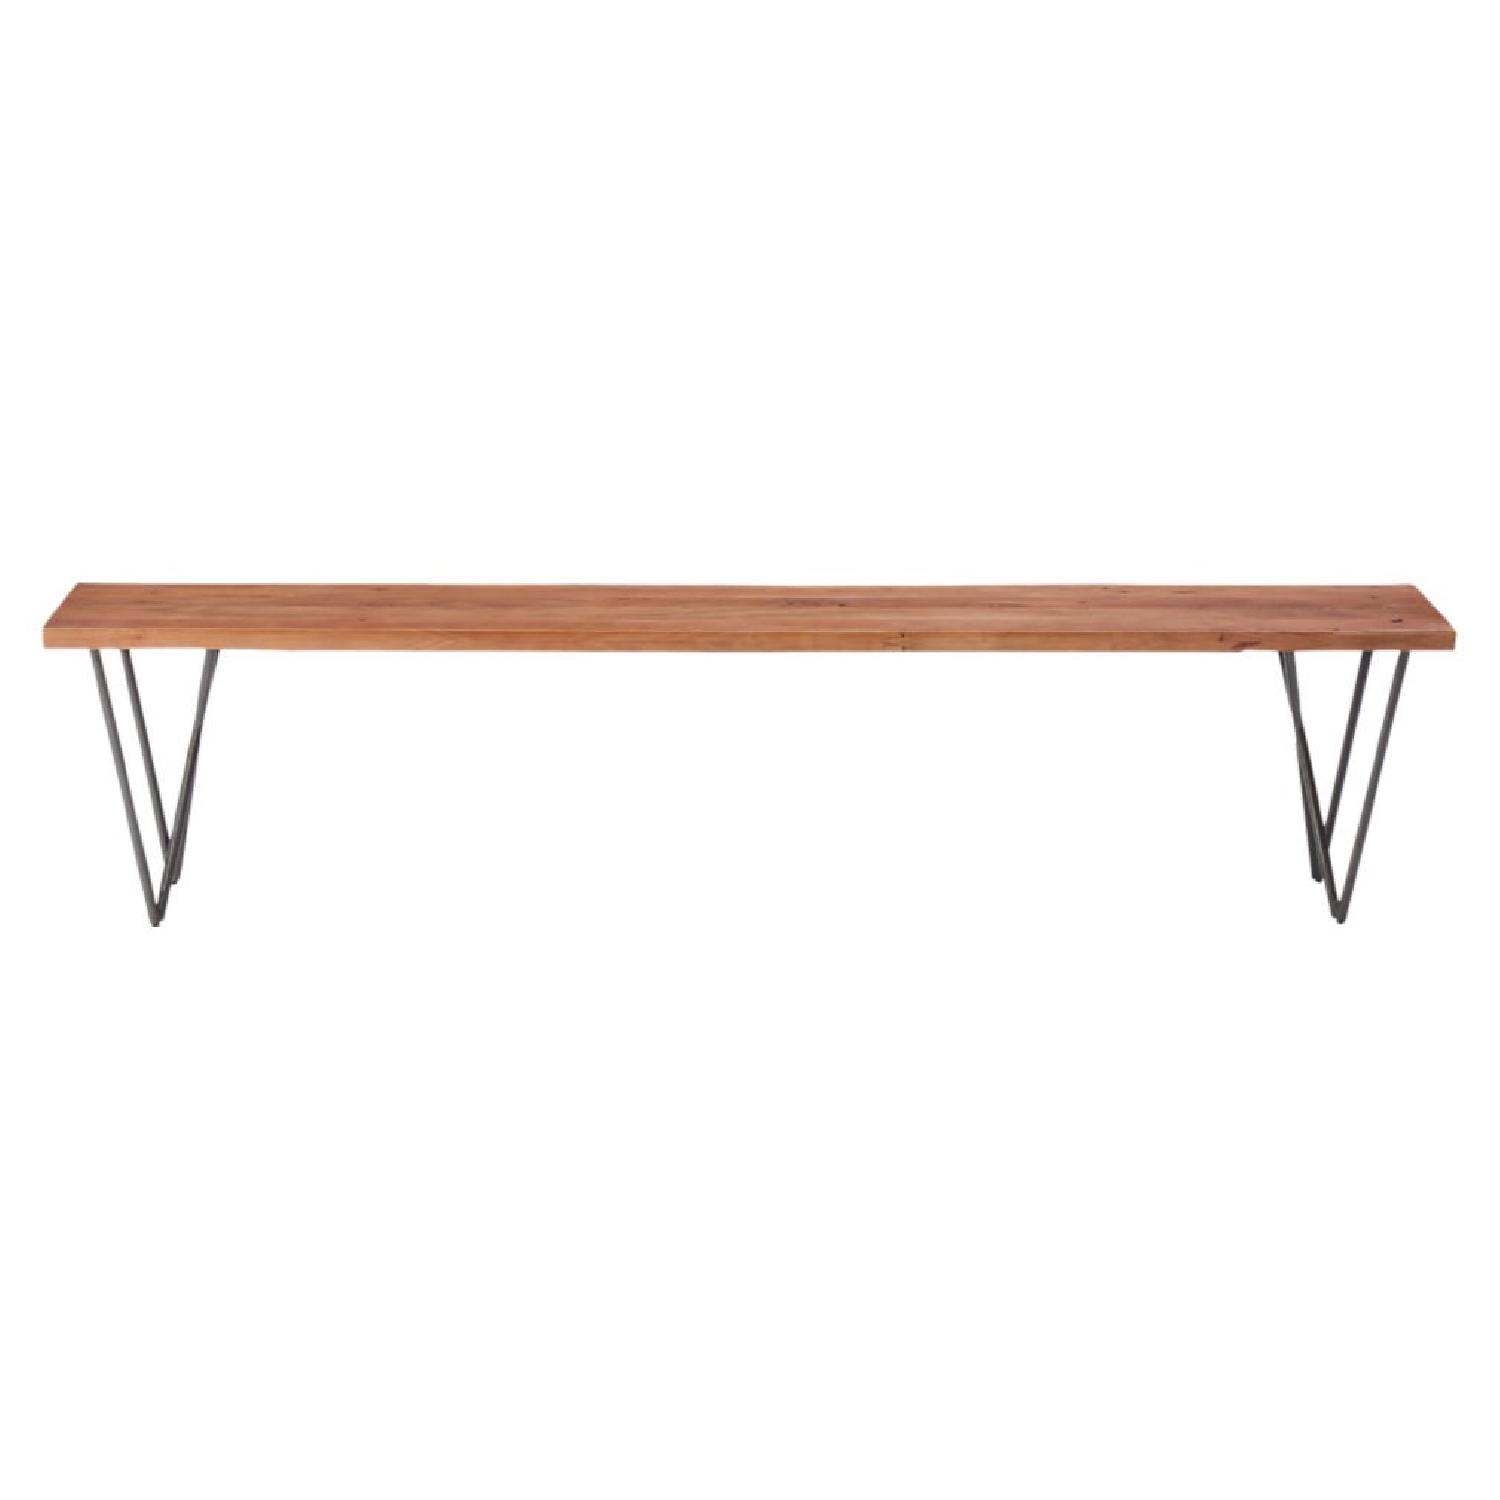 CB2 Dylan Benches